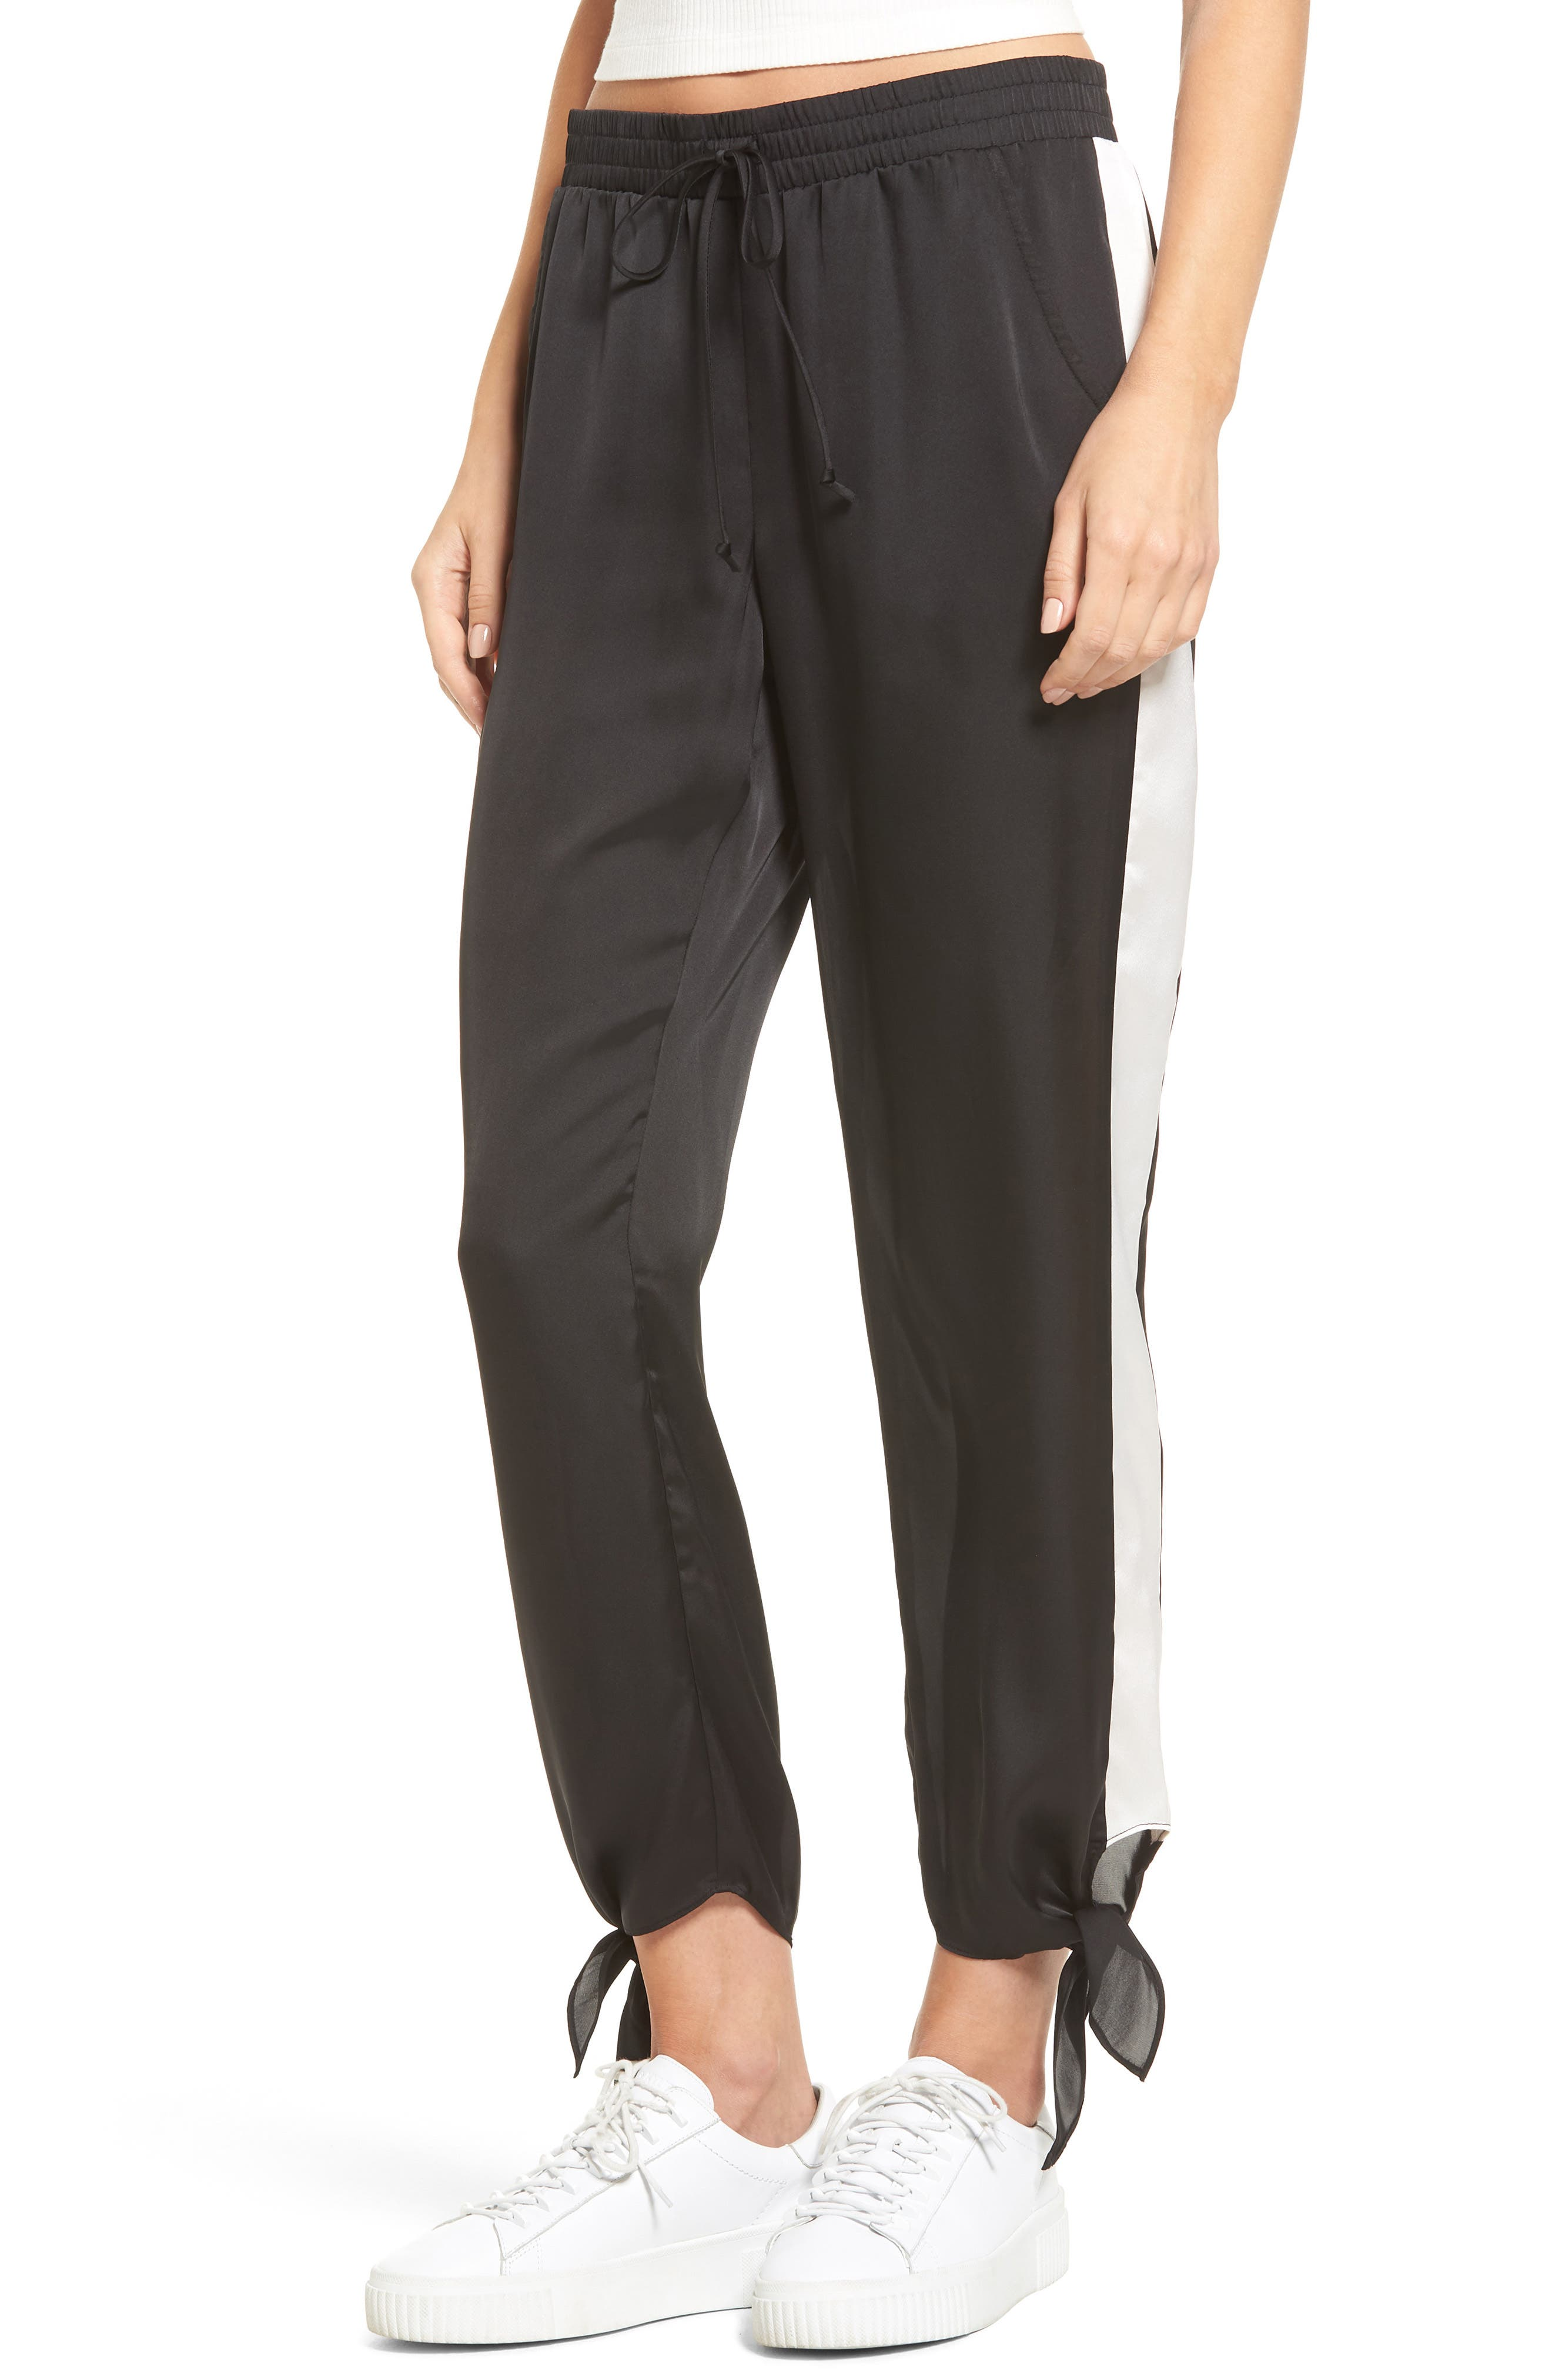 Socialite Ankle Tie Track Pants